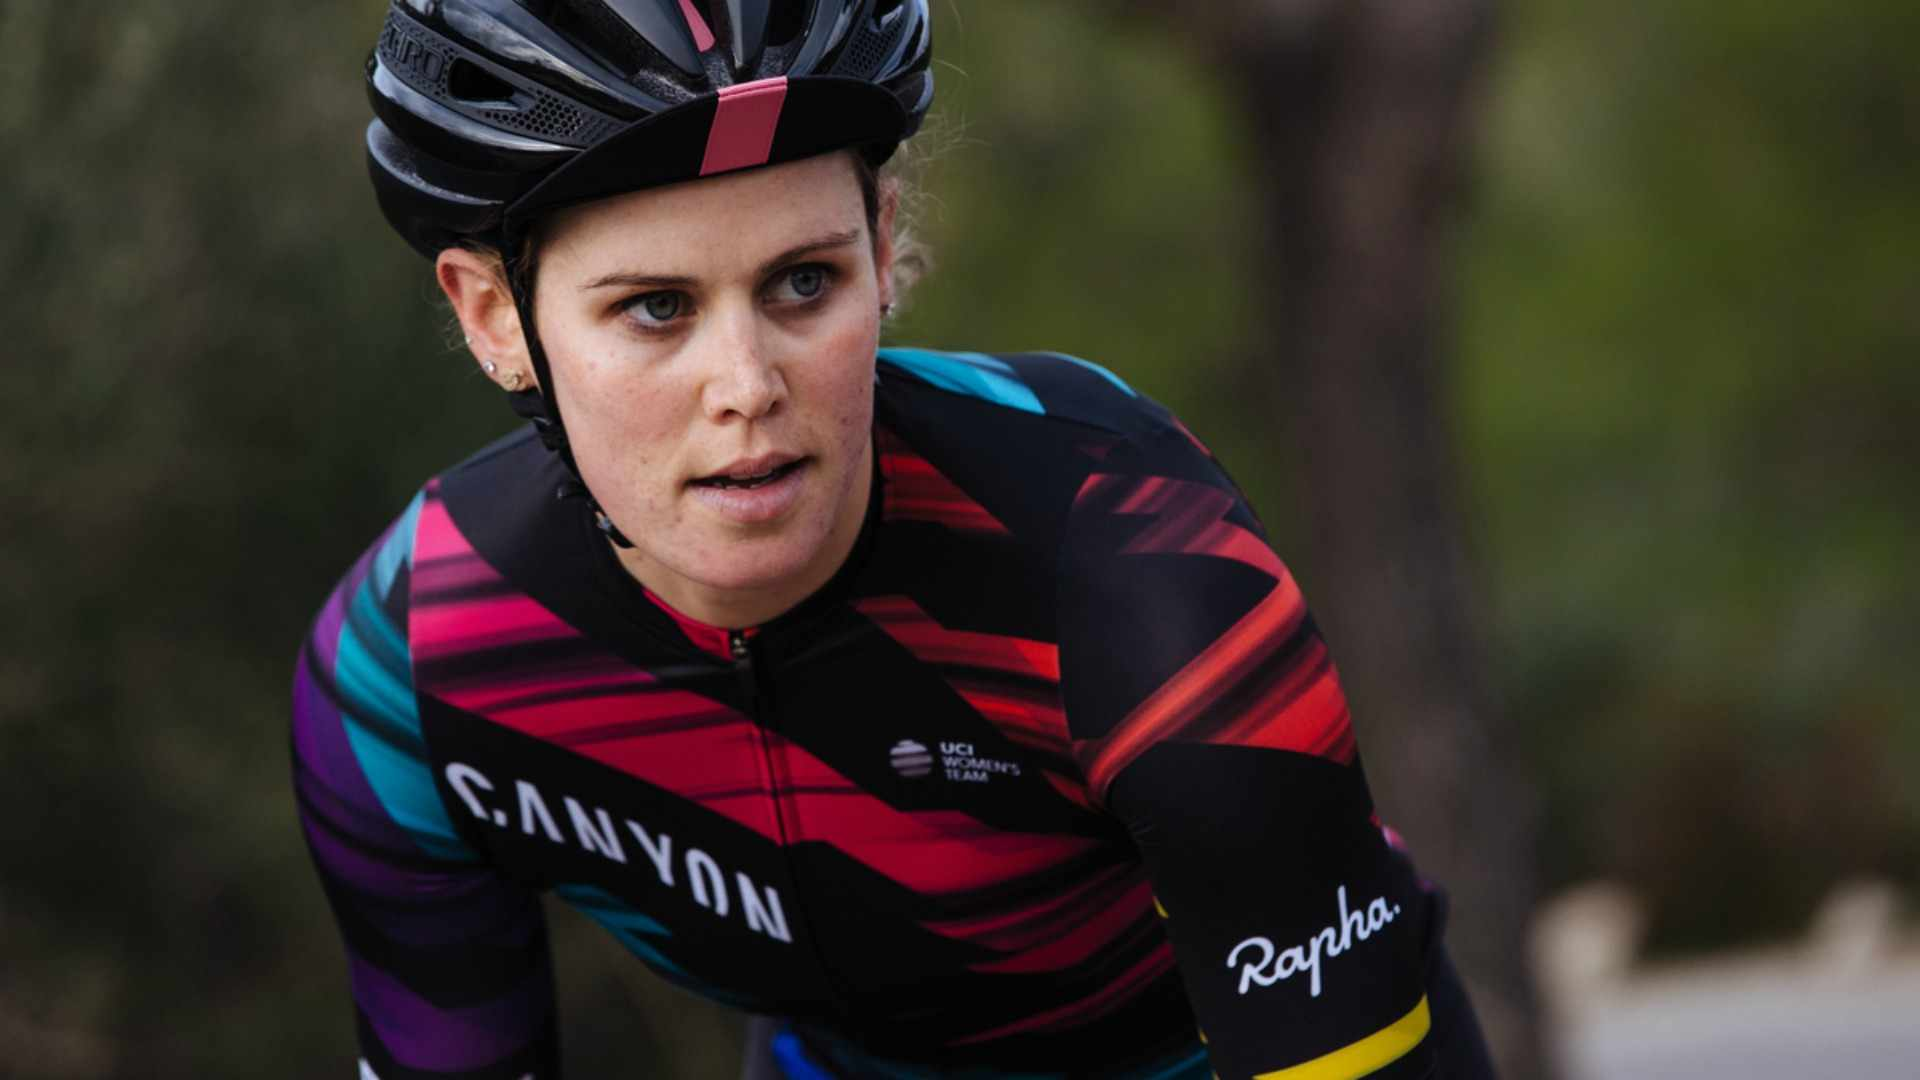 Tiffany Cromwell in the new Canyon-SRAM team kit, designed by Rapha